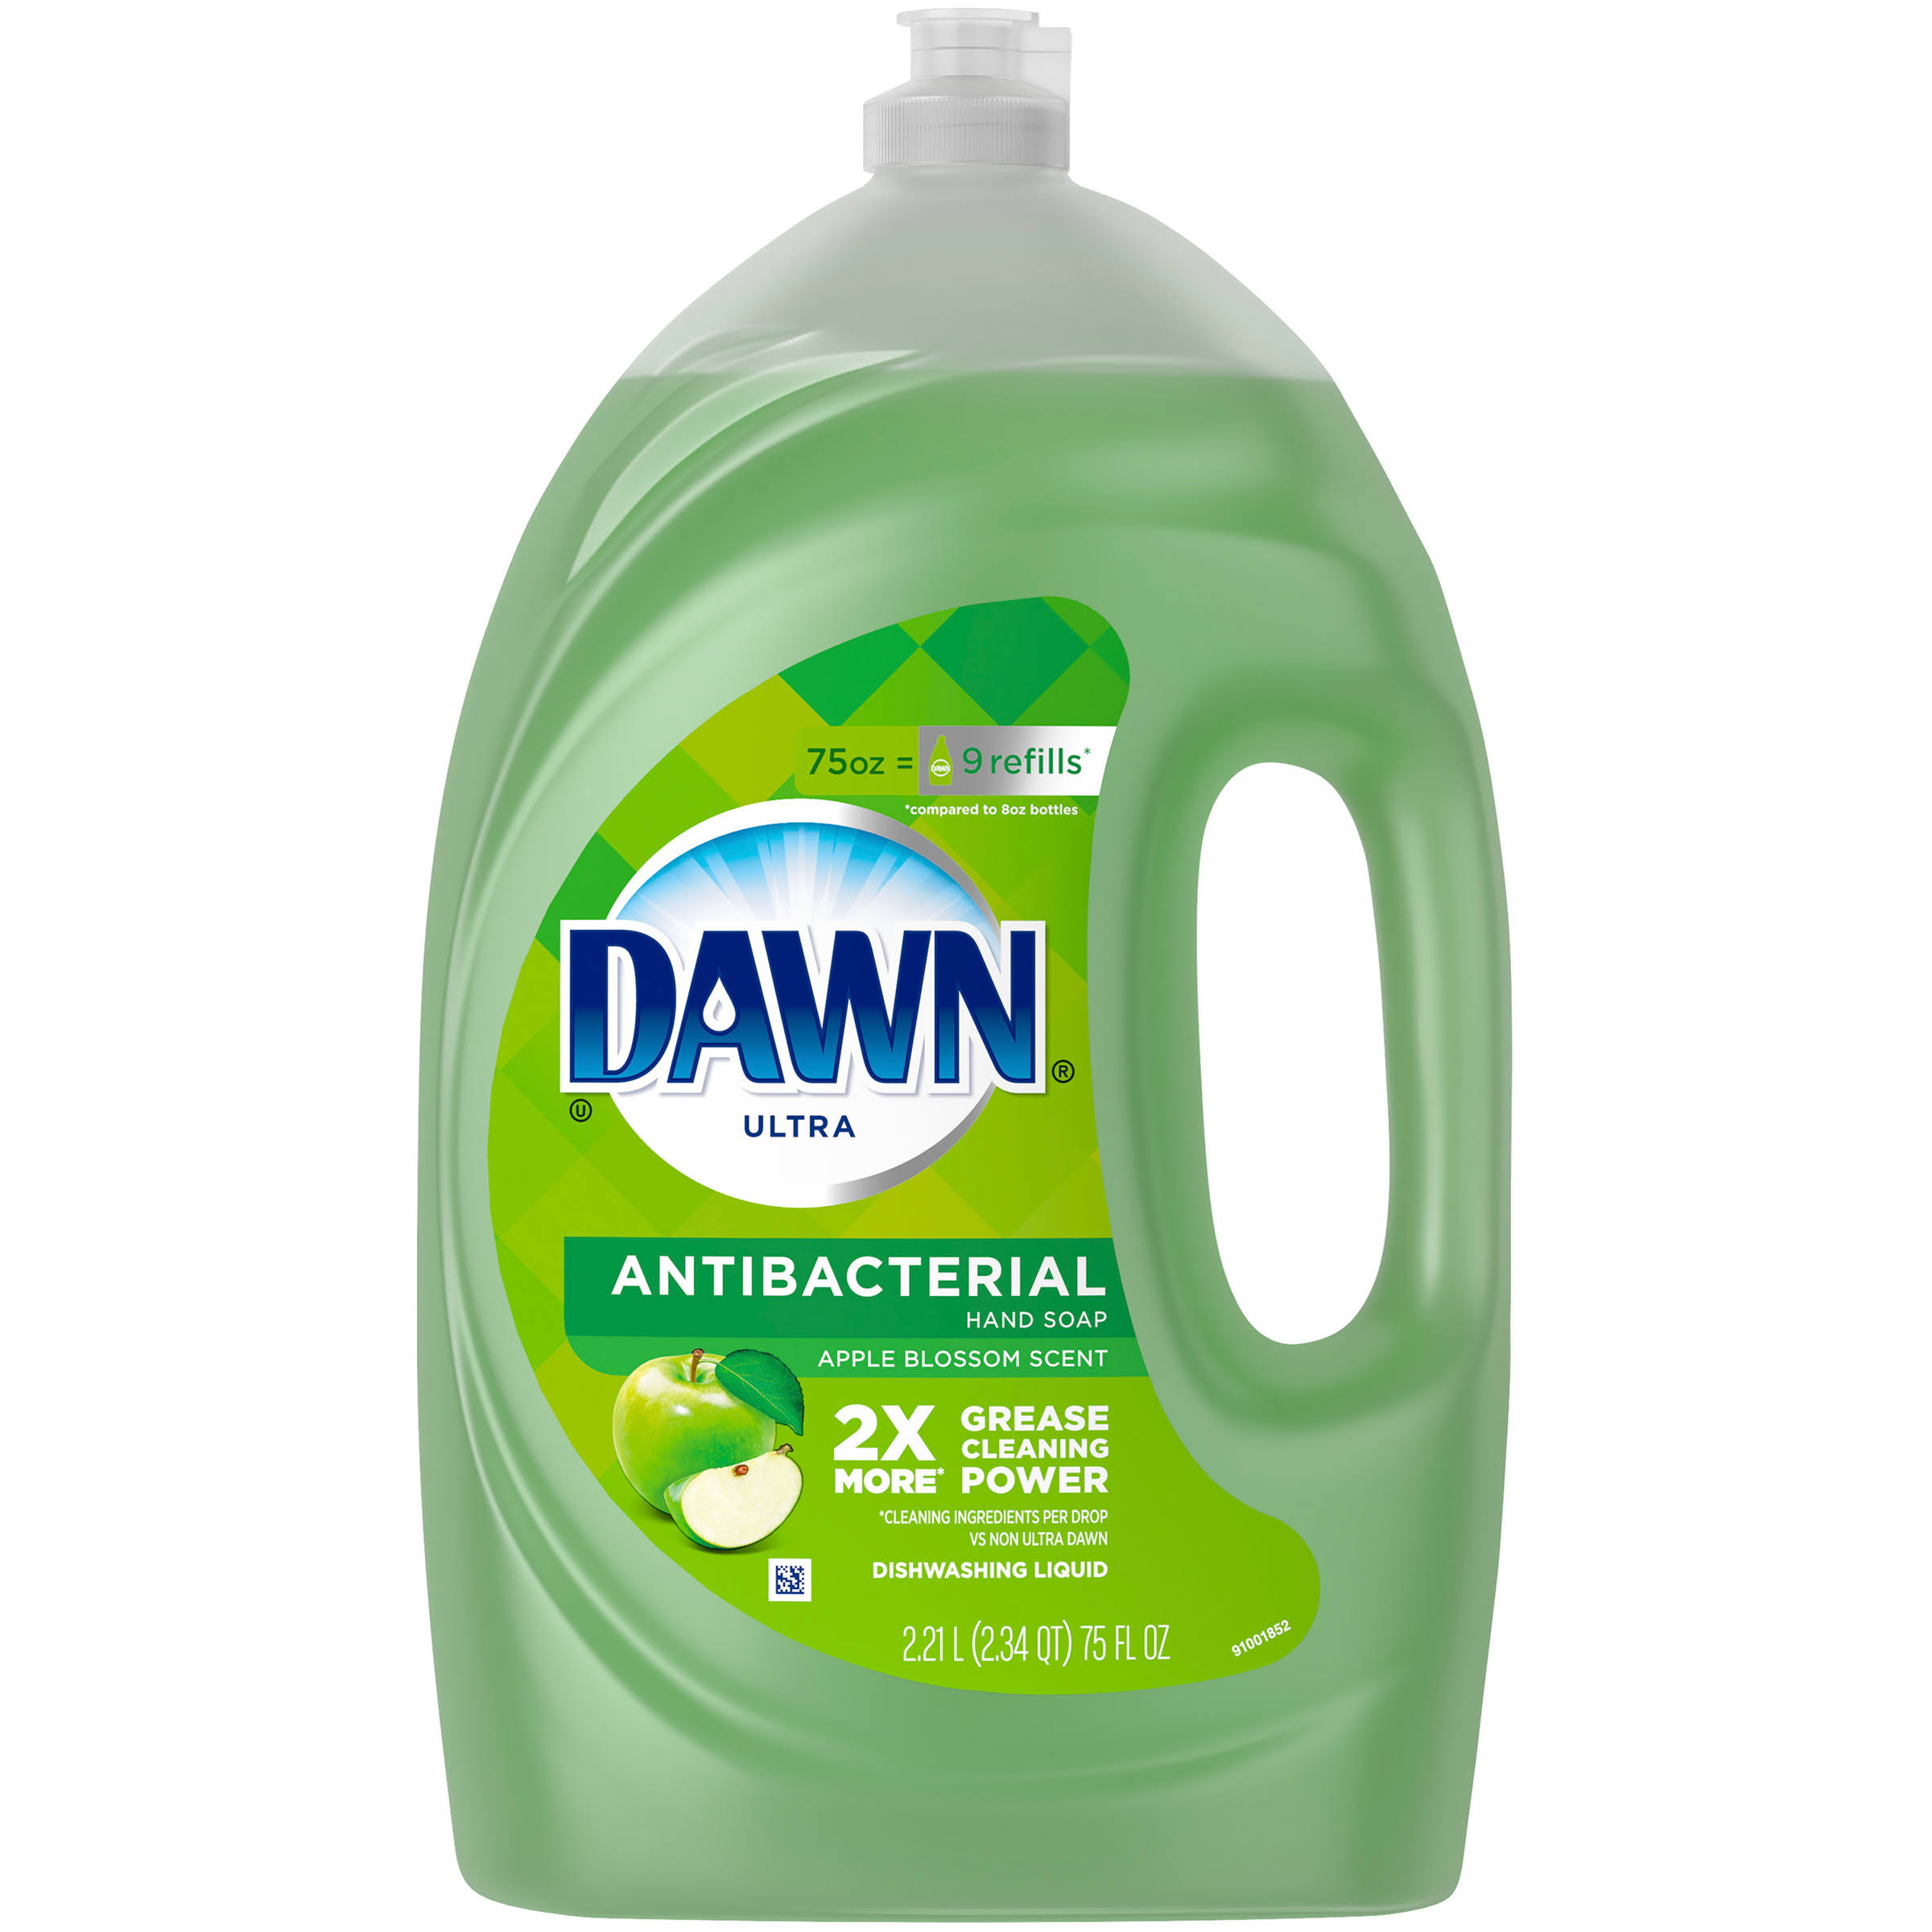 Dawn Ultra Antibacterial Hand Soap Apple Blossom Scent Dishwashing Liquid - 75oz